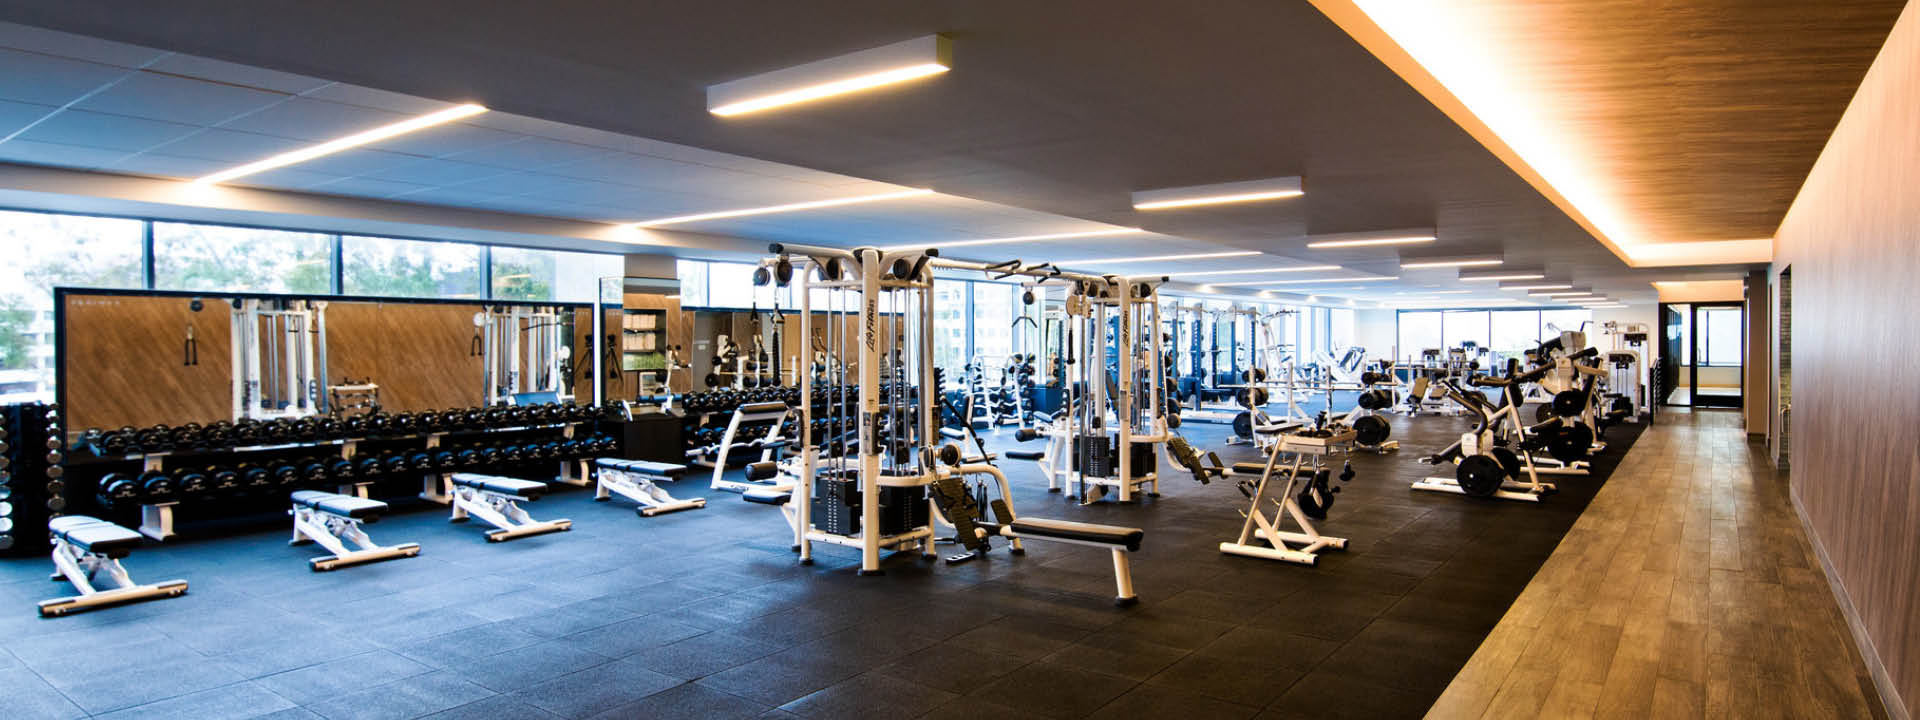 12193e678c781 Gym in Glendale, CA: Fitness Club with Pilates & Yoga Studios